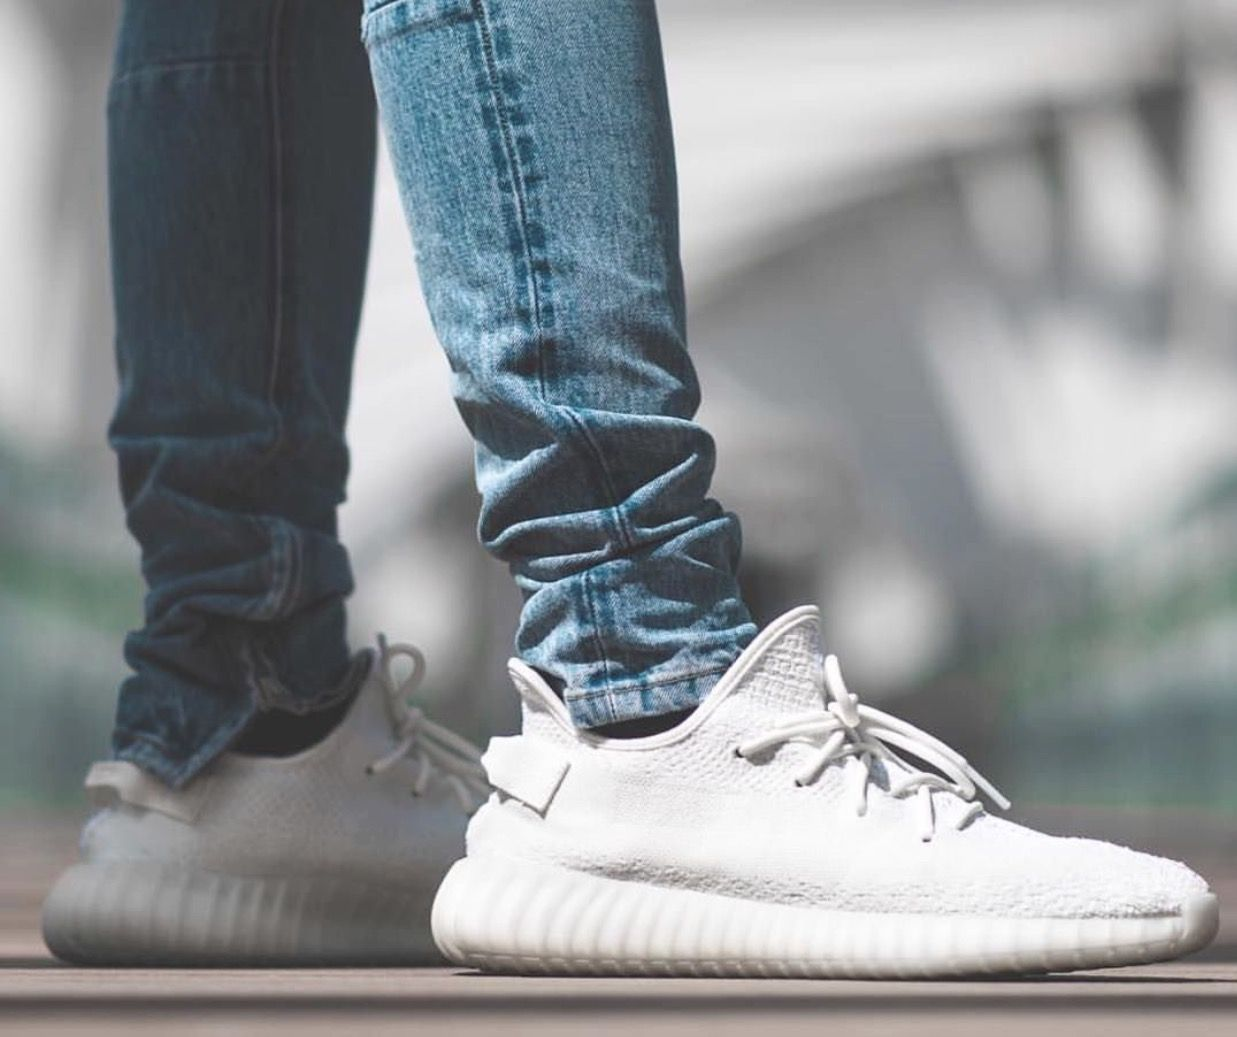 finest selection f1788 40abe Upcoming release (29 4 17)  adidas Yeezy Boost 350 V2 White Cream White